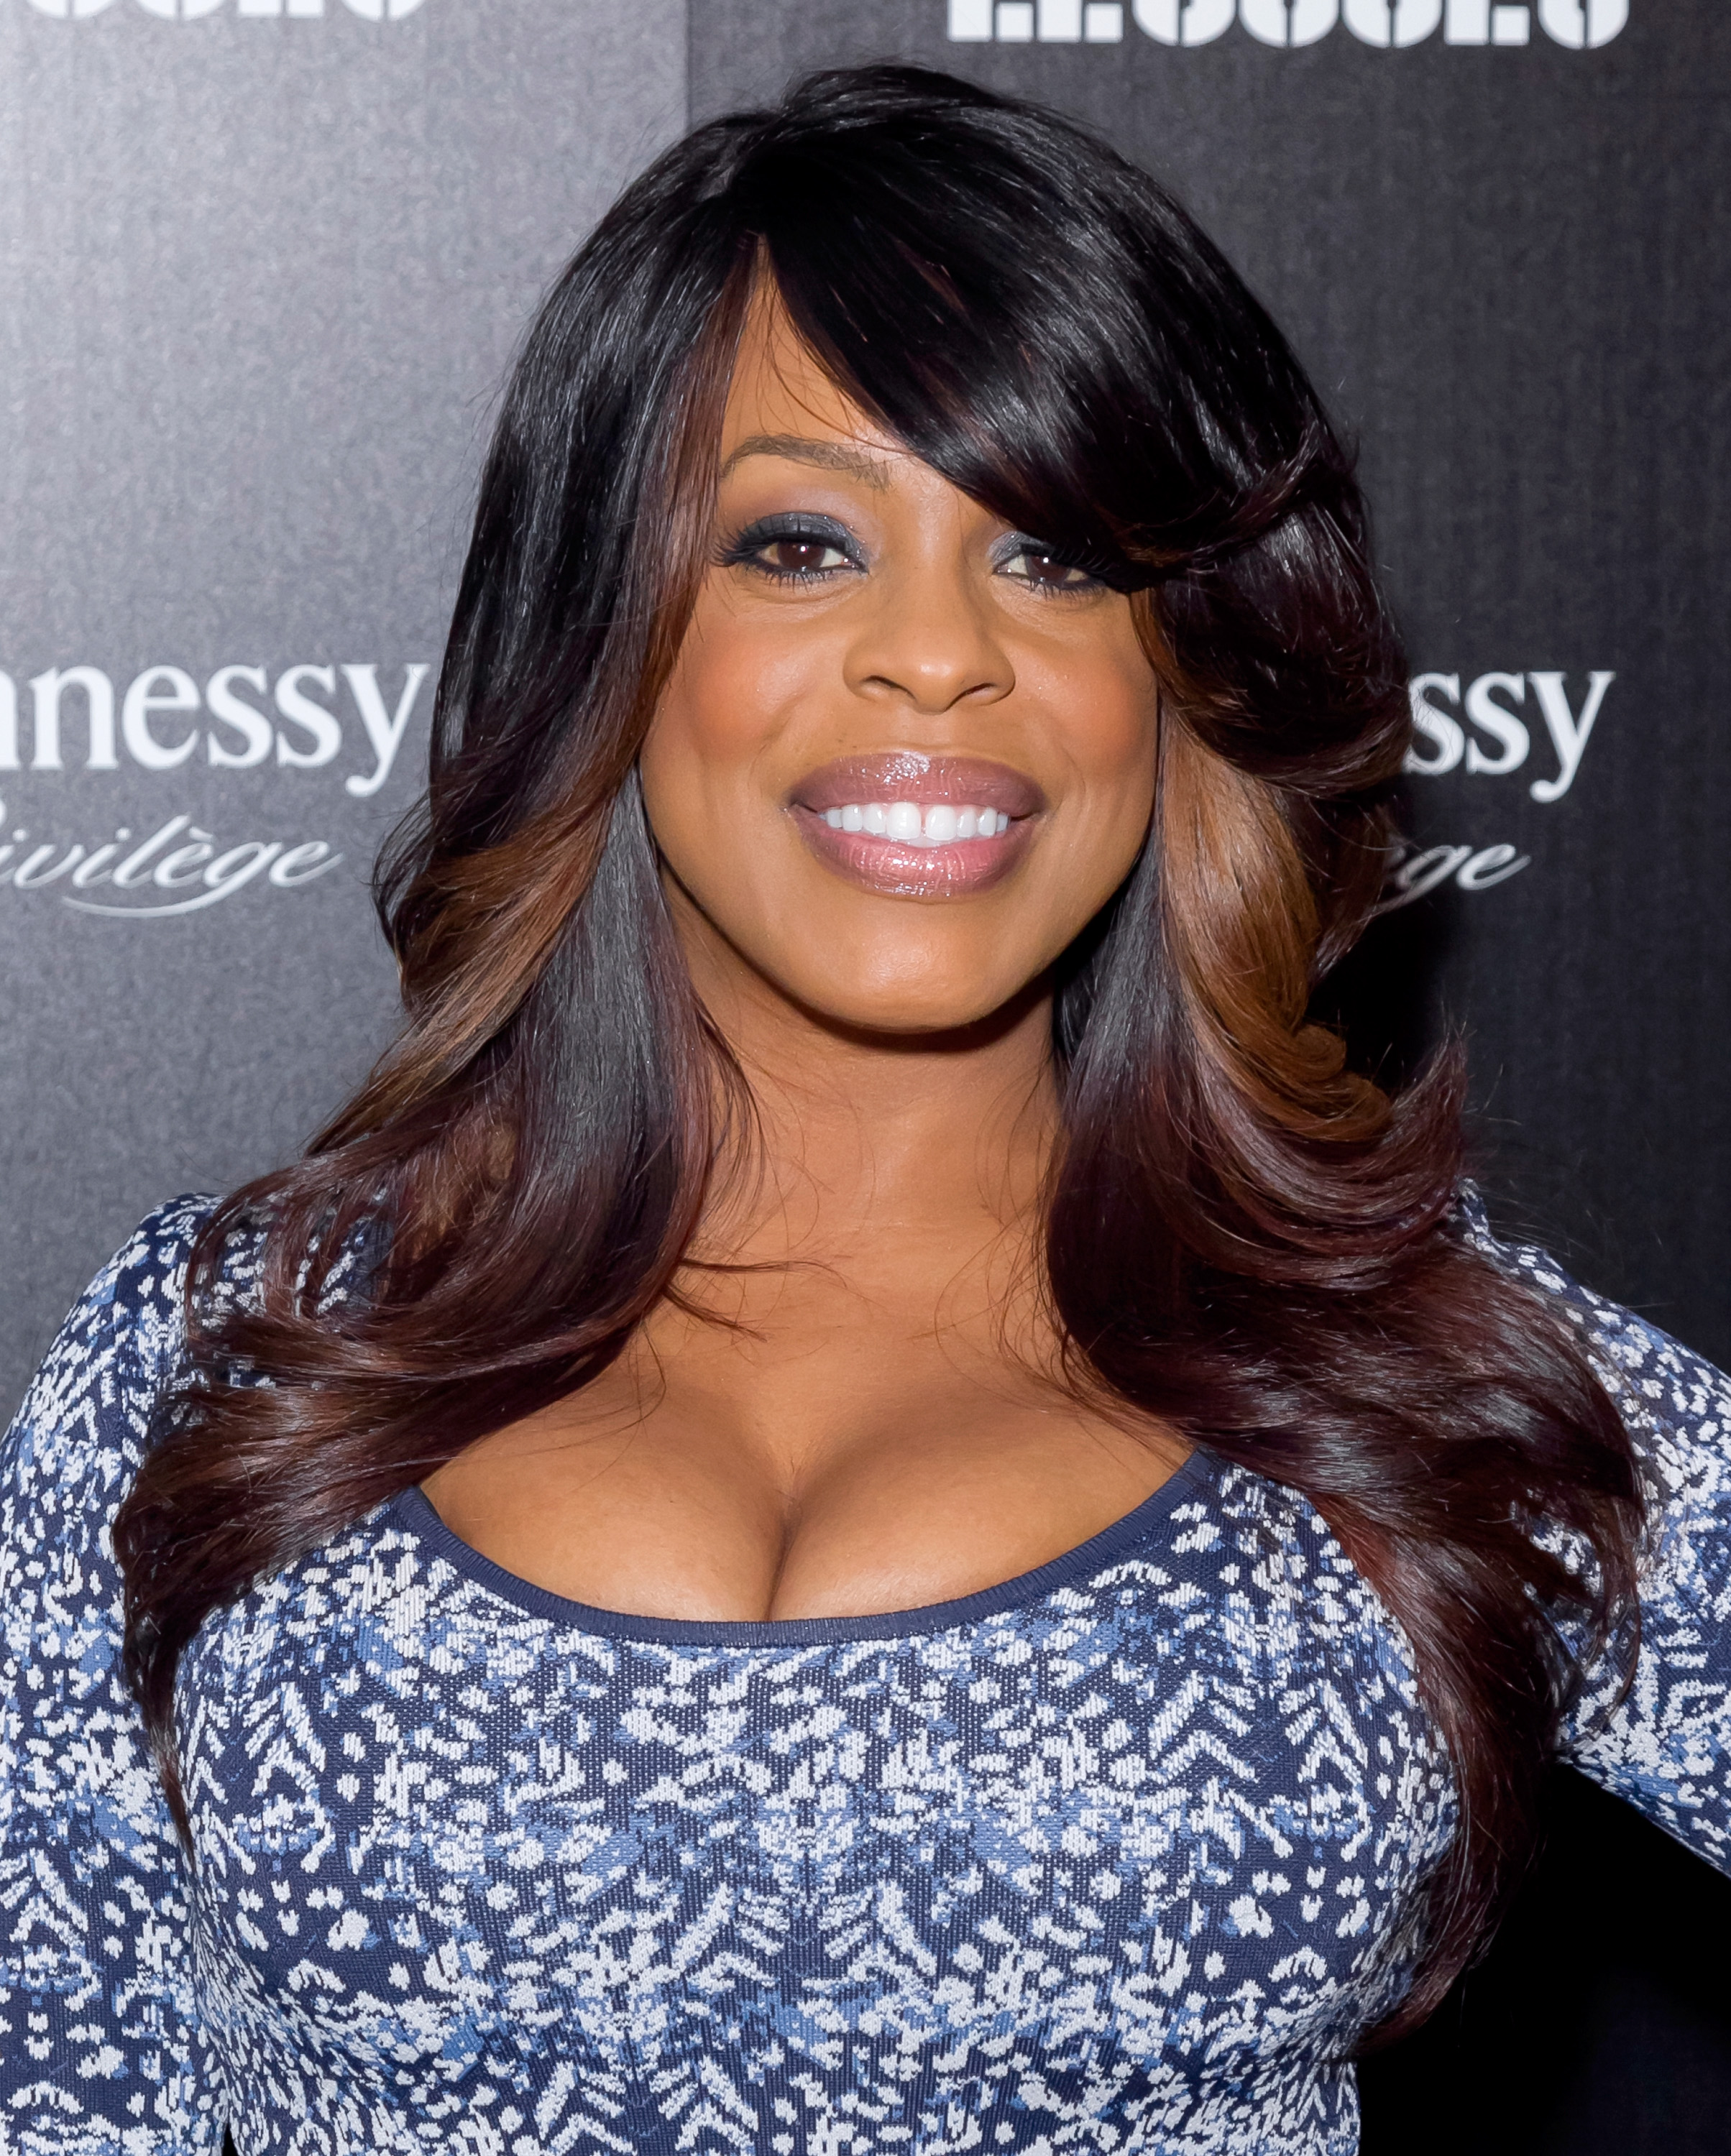 Forum on this topic: Jessica Manley, niecy-nash/